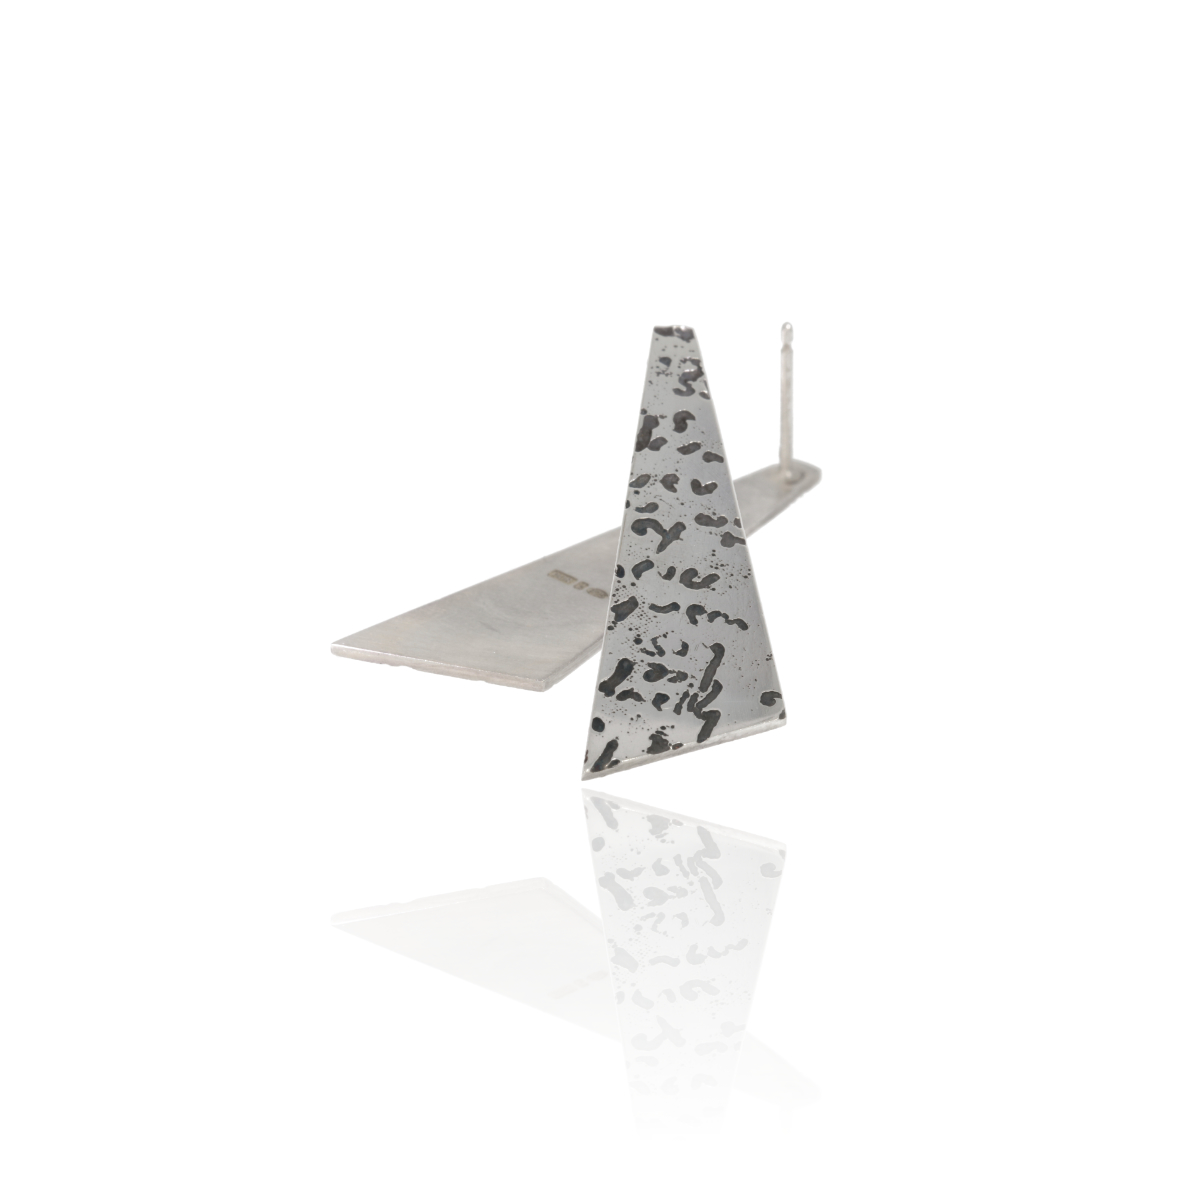 Silver angular drop earrings with etched and oxidised handwriting